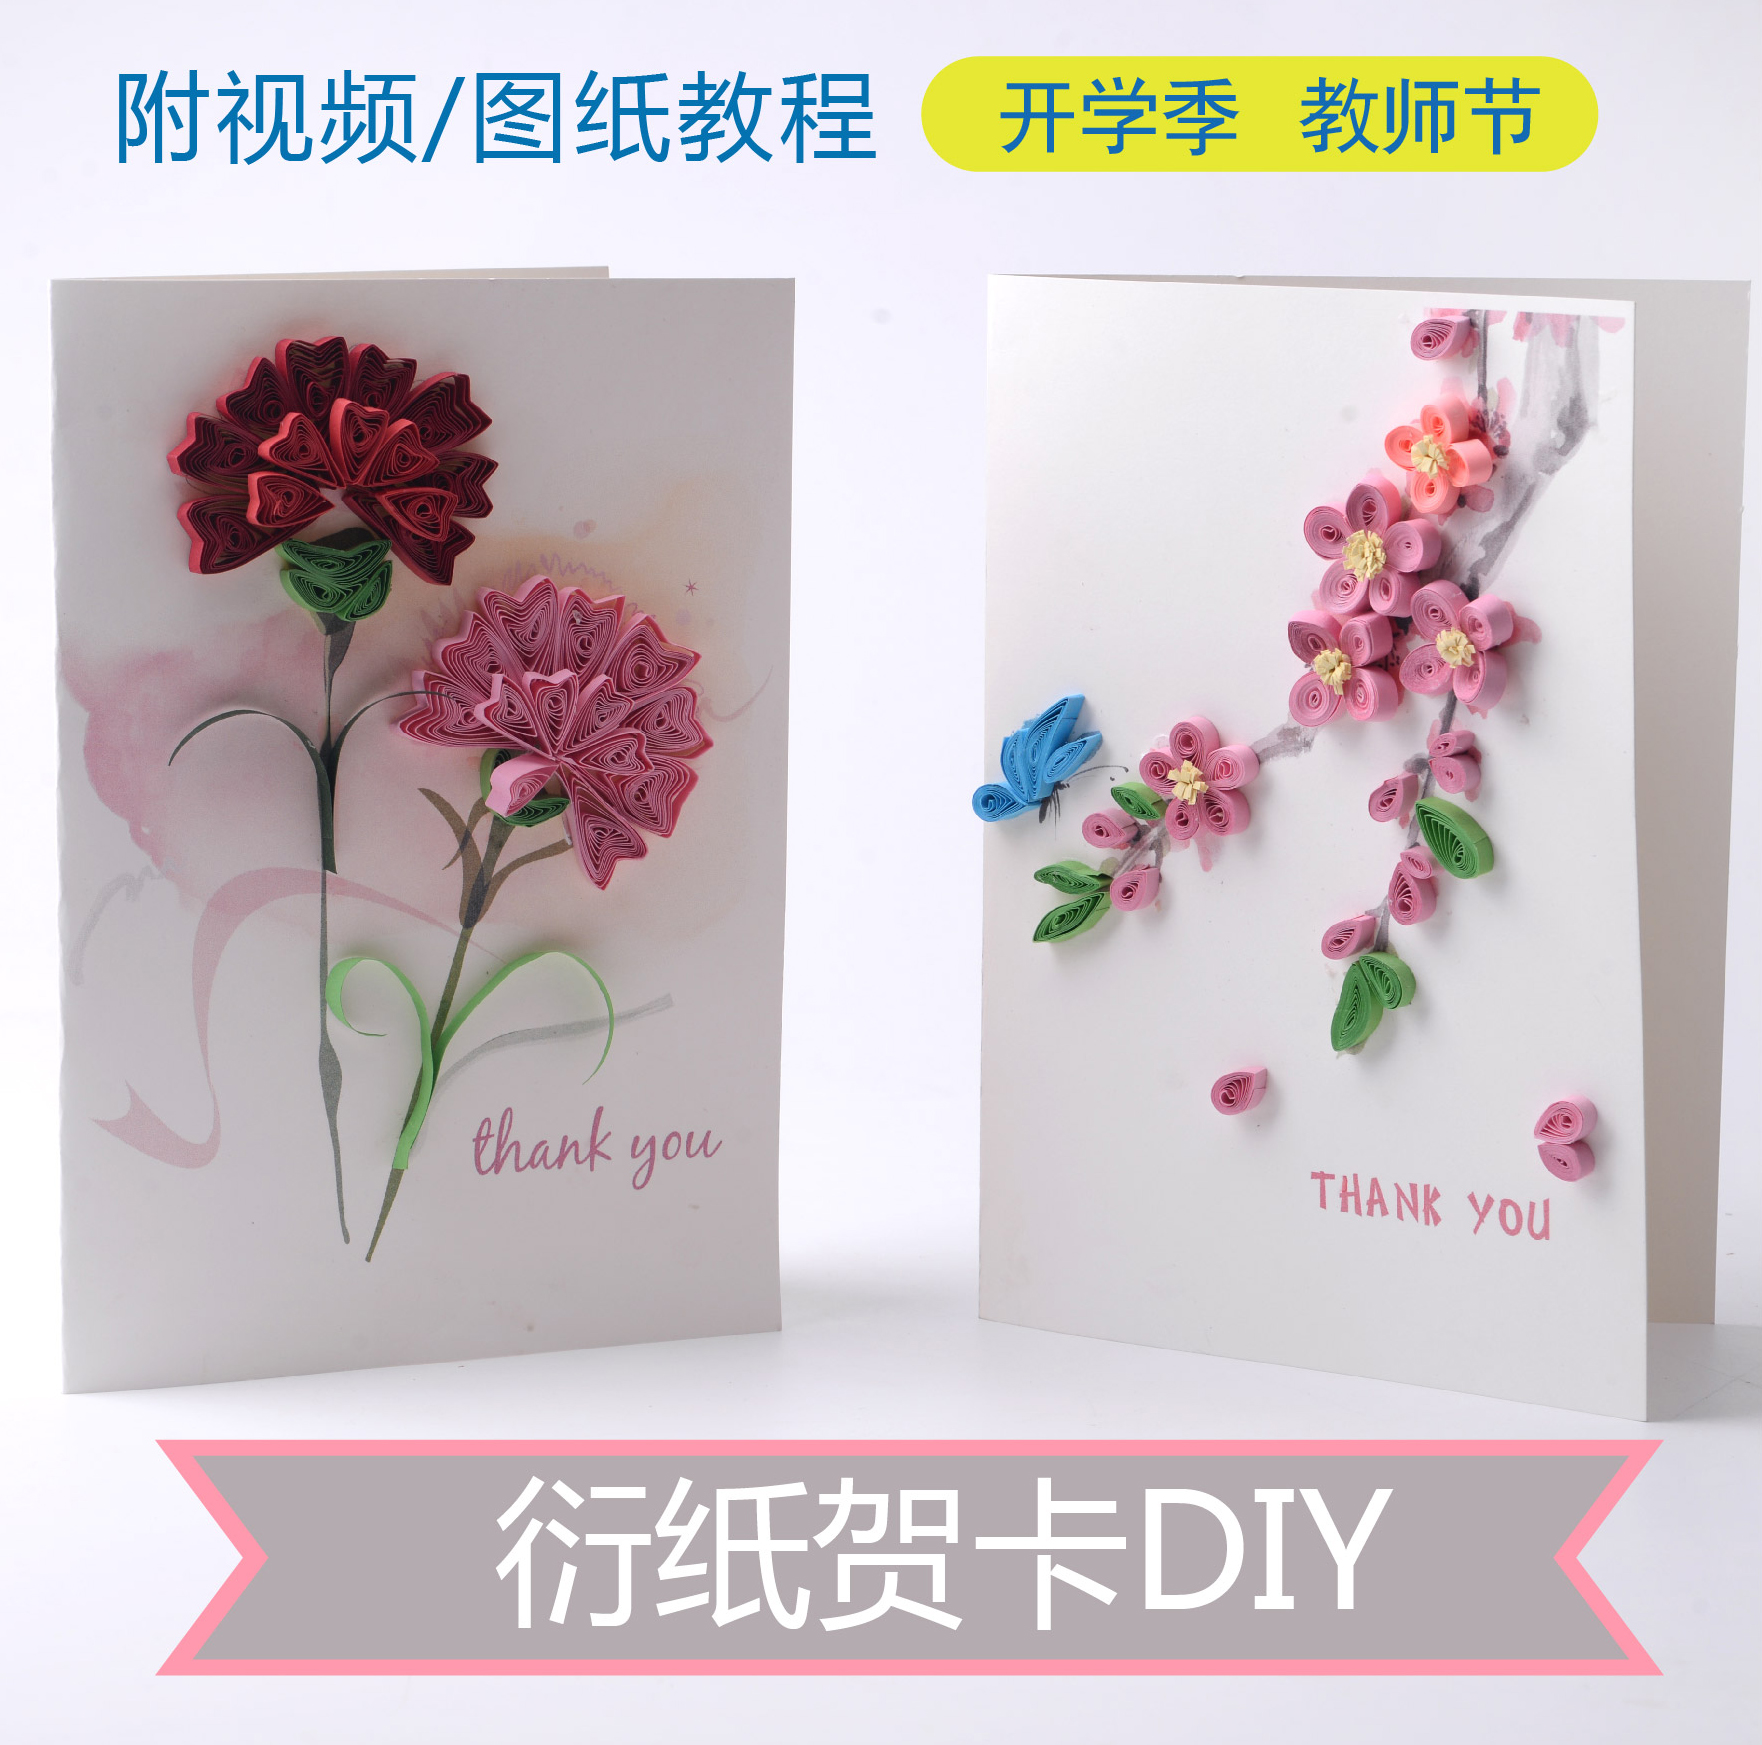 Mid Autumn Festival To Send Teachers Diy Carnations Paper Greeting